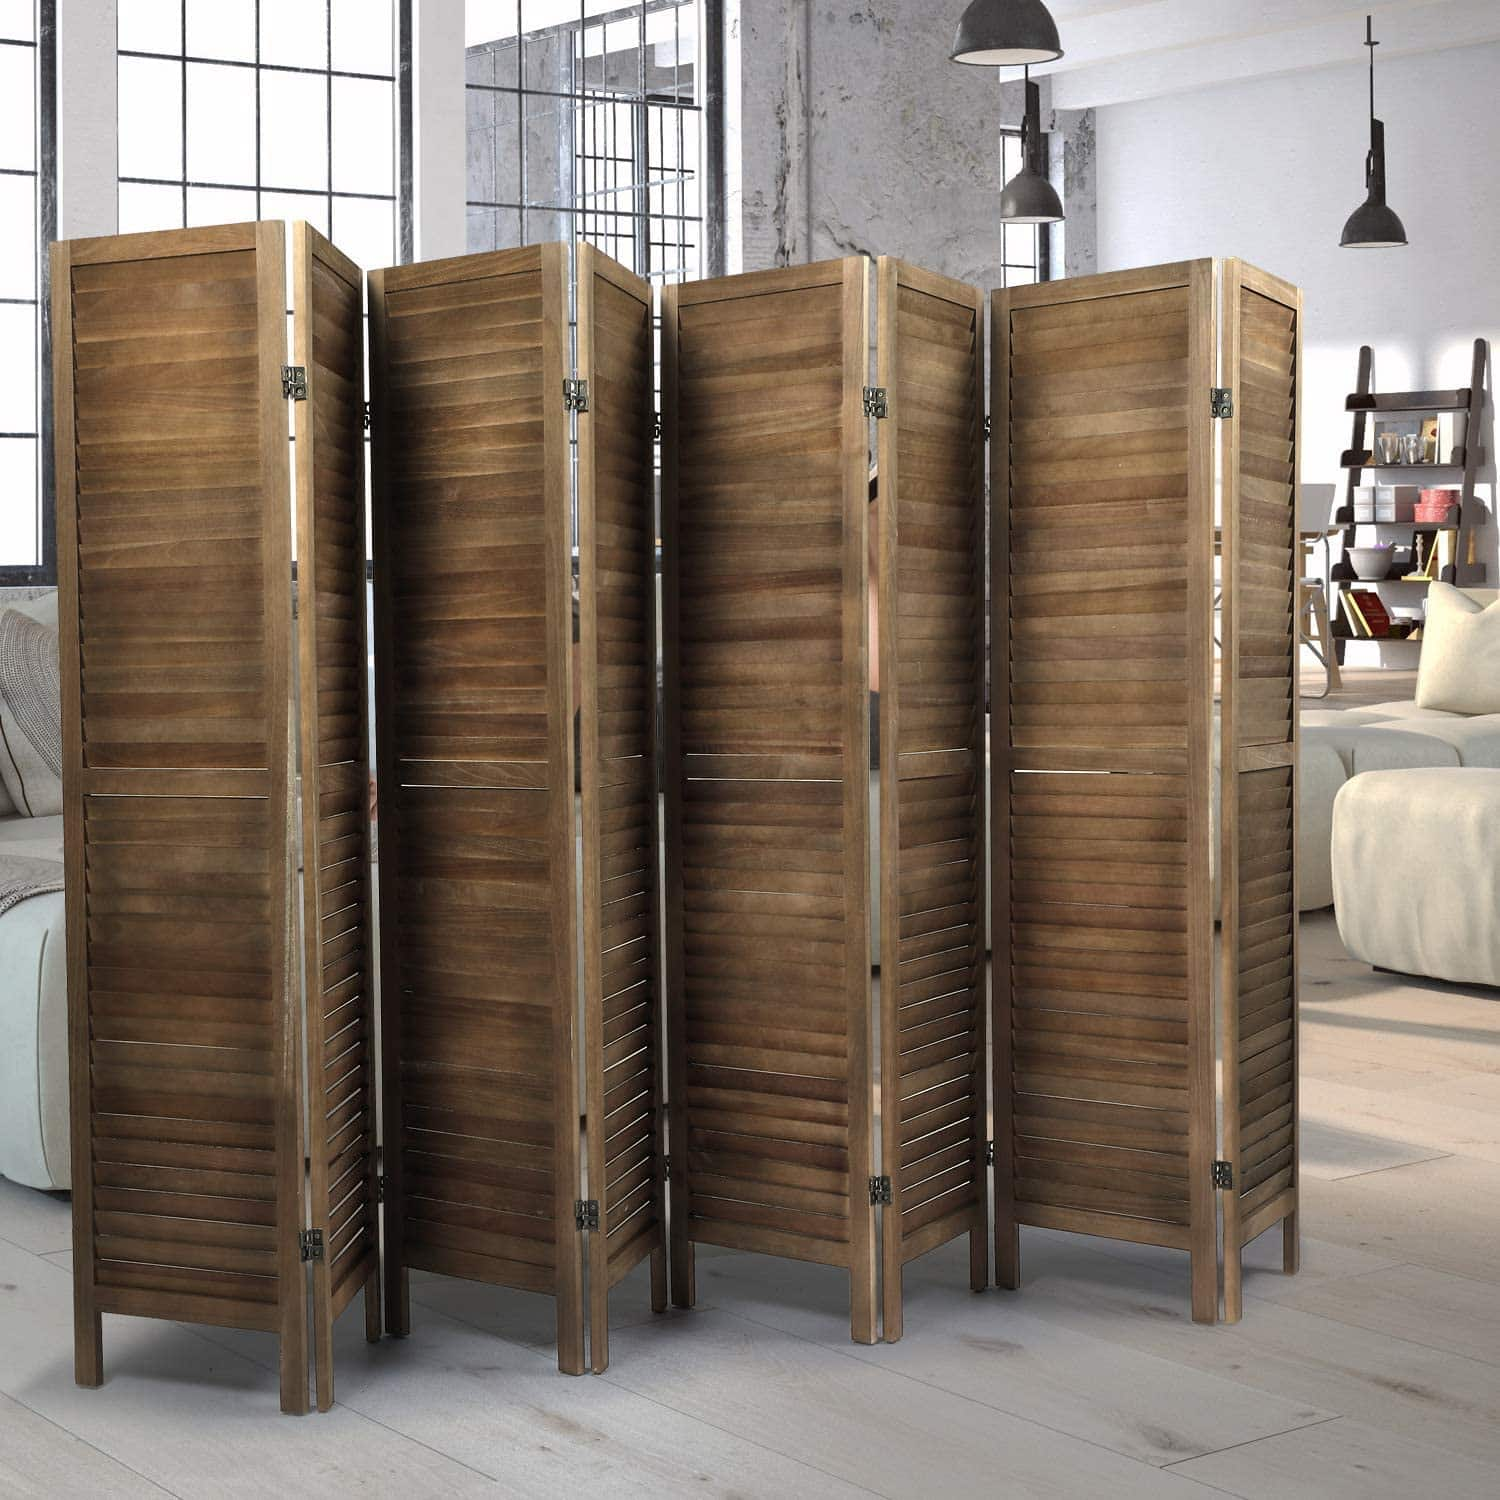 Sycamore Wood Freestanding Room Divider Wall Divider